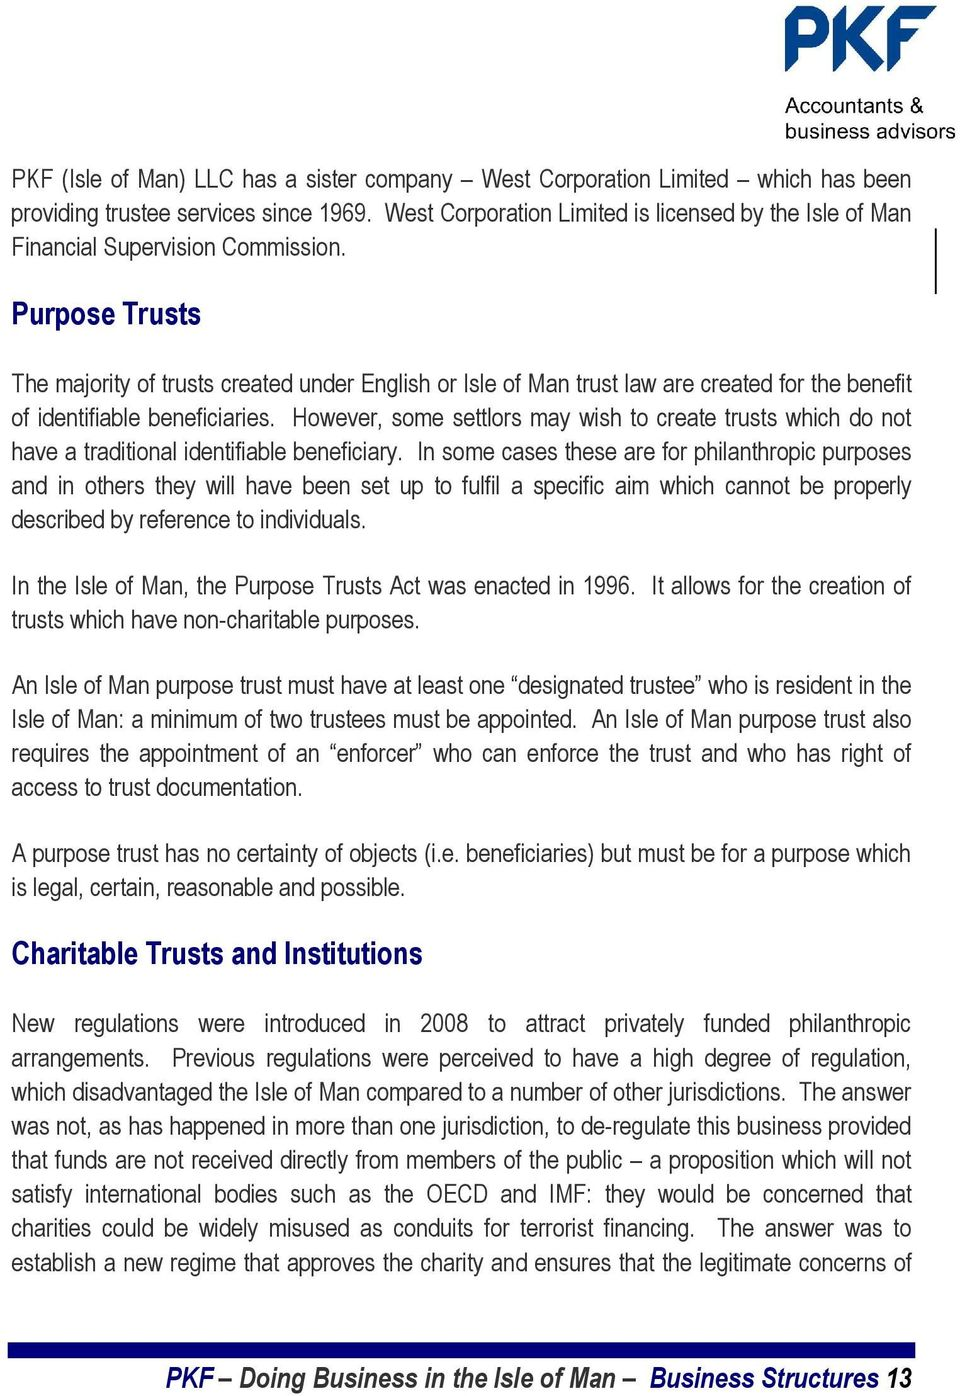 Purpose Trusts The majority of trusts created under English or Isle of Man trust law are created for the benefit of identifiable beneficiaries.